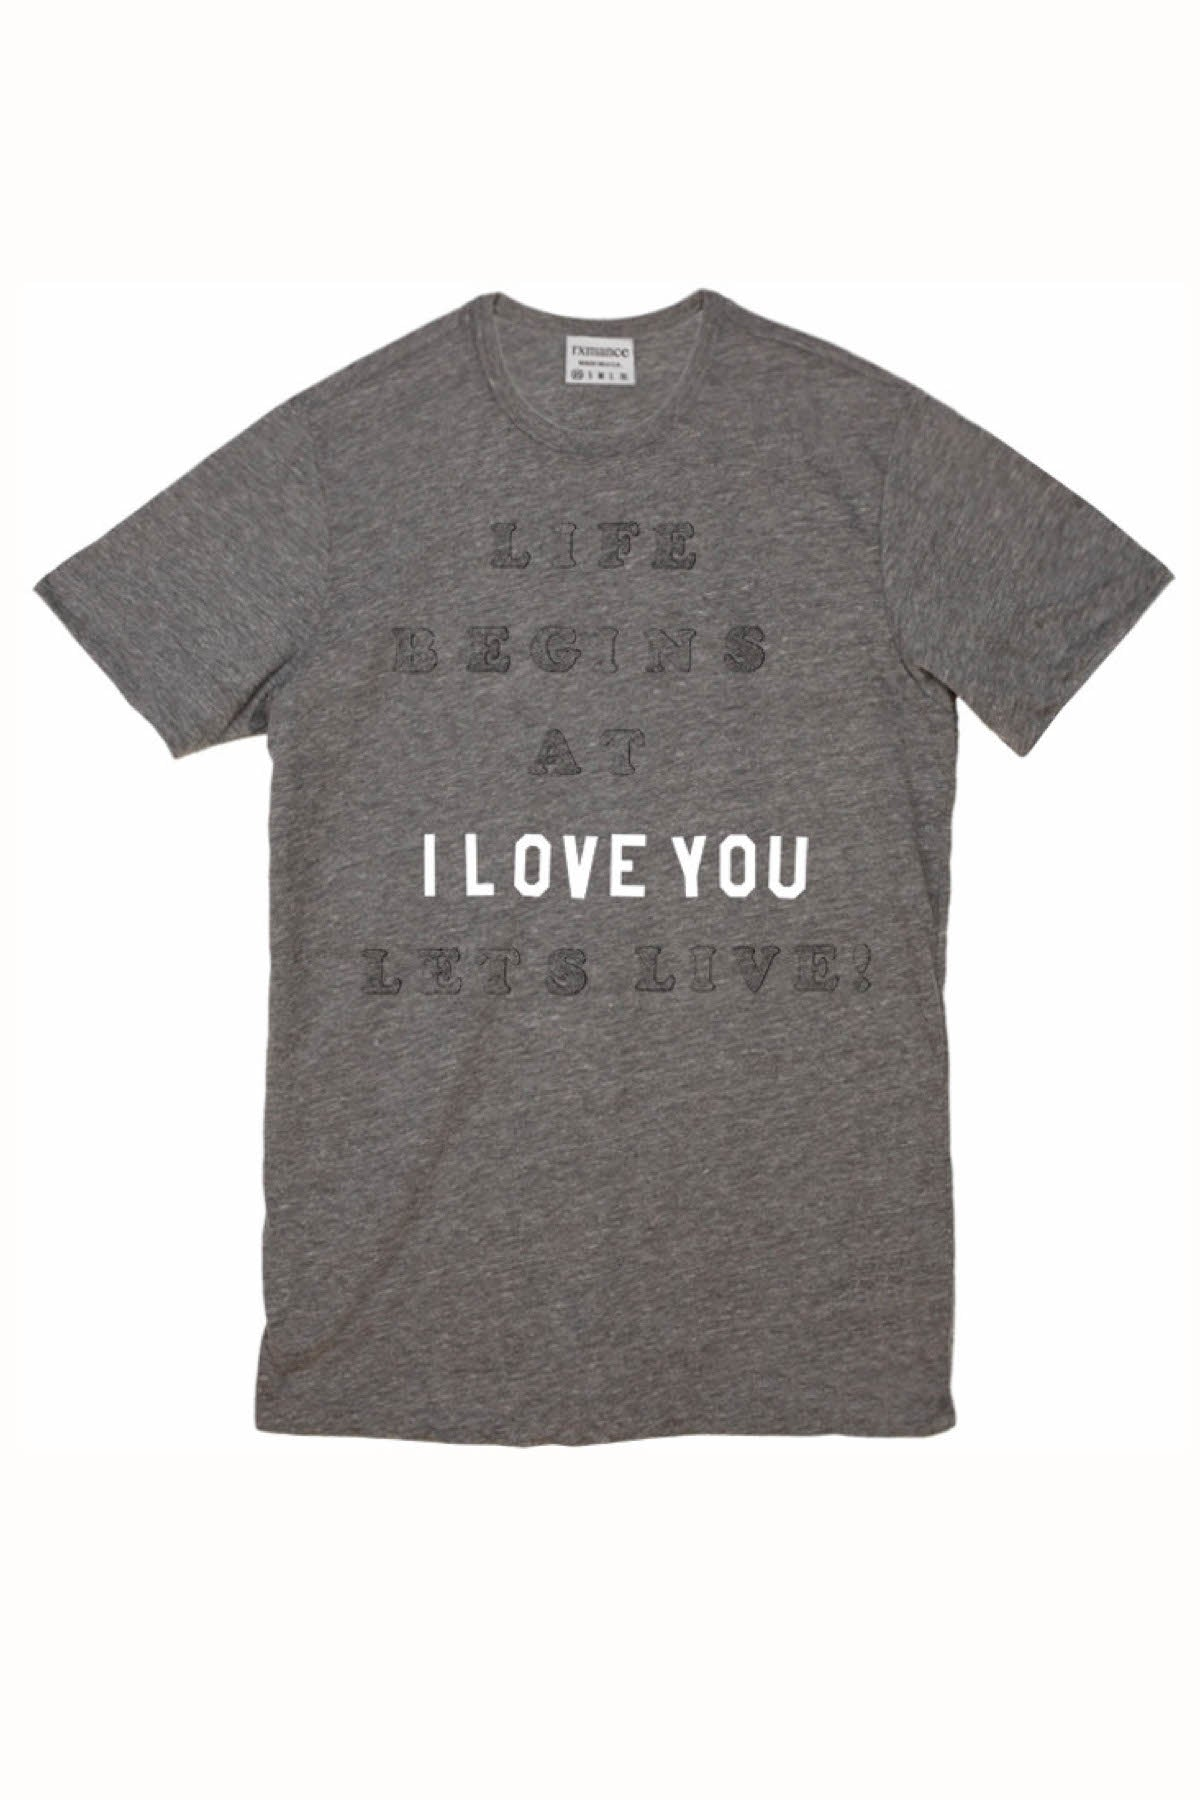 Rxmance Unisex Heather Grey 'Lets Live' Tee